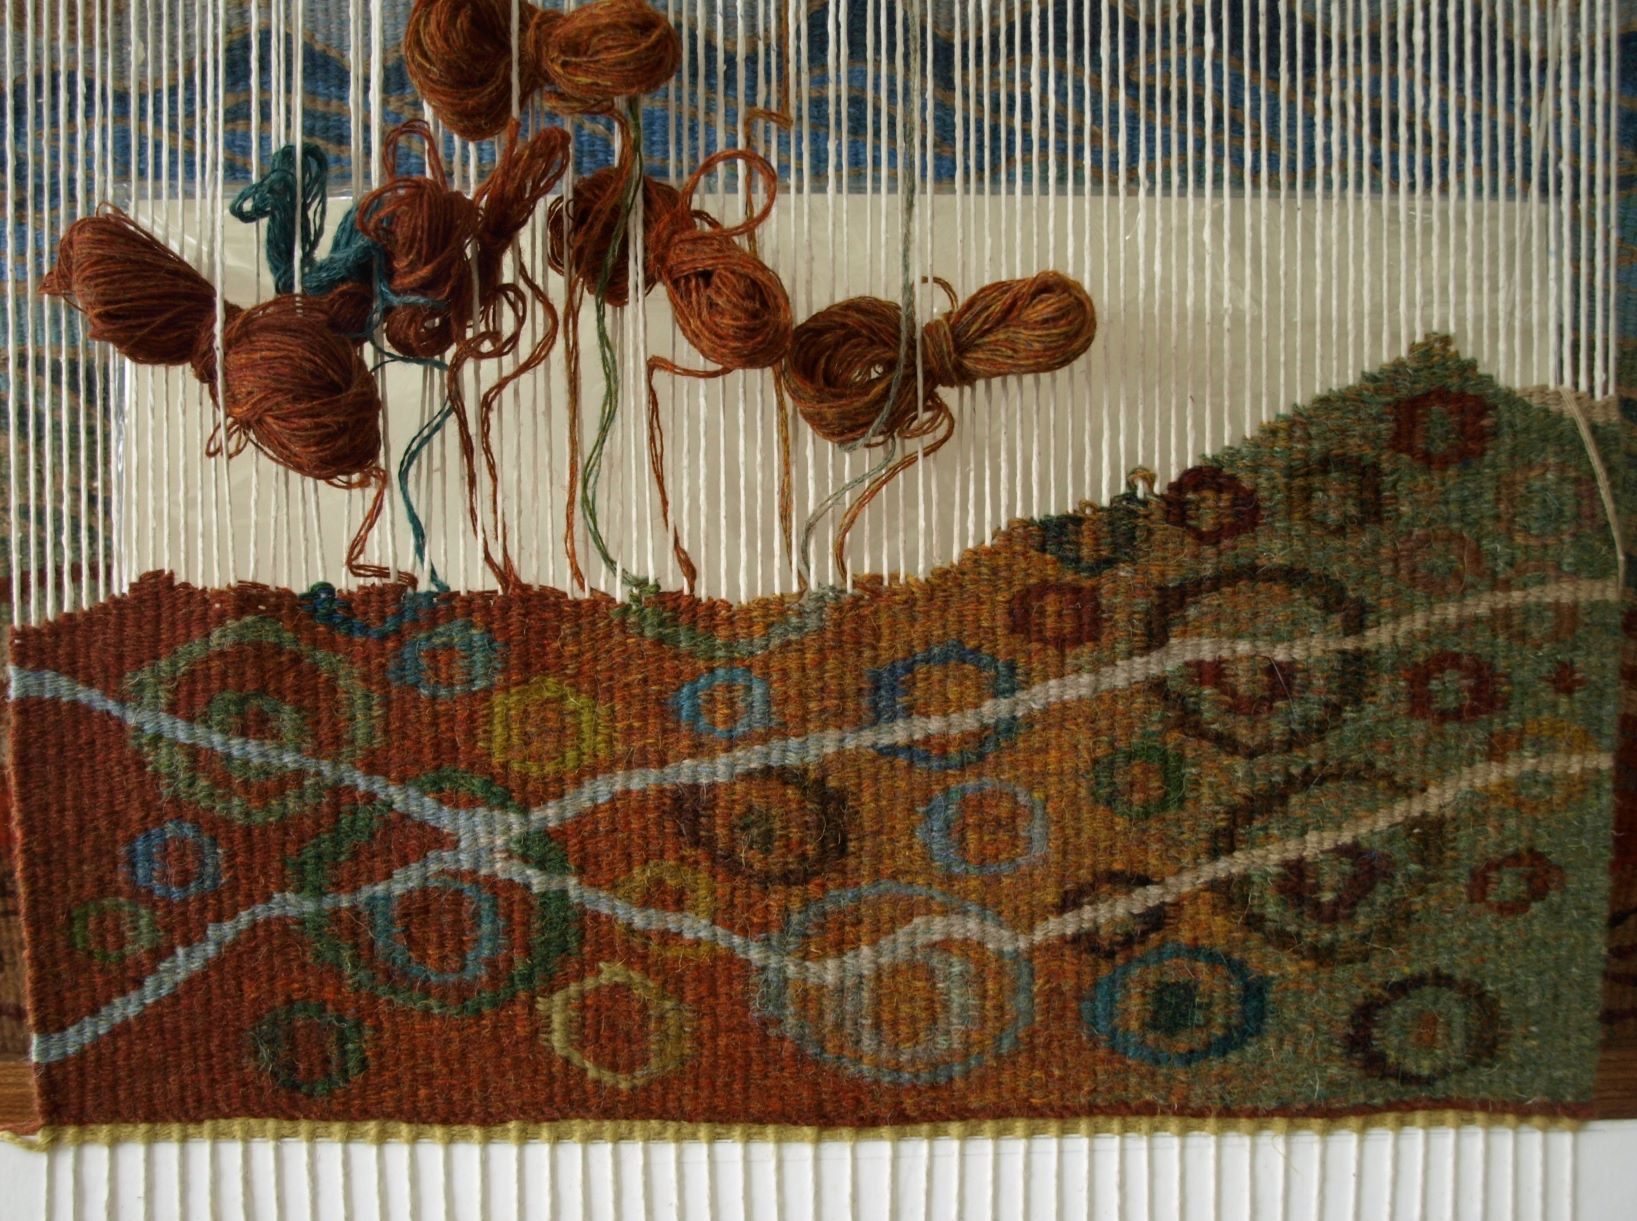 Tapestry by Scottish handloom weaver Louise Oppenheimer